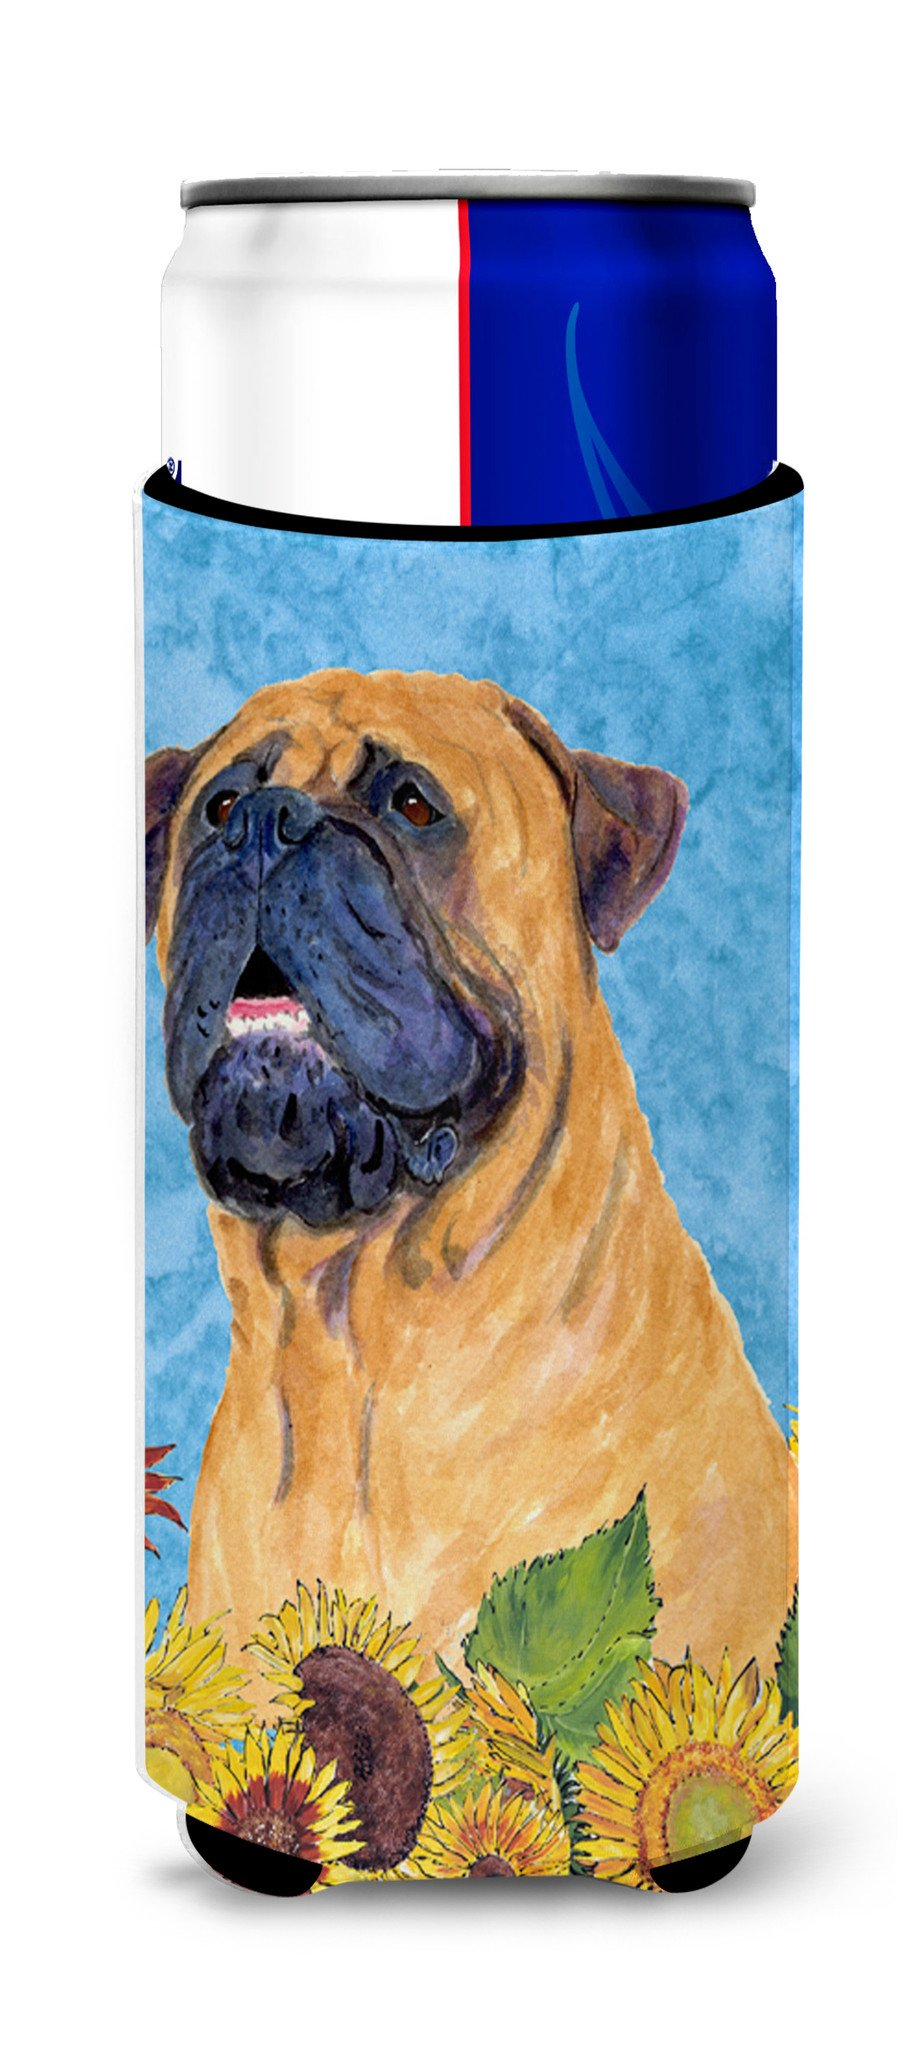 Bullmastiff in Summer Flowers Ultra Beverage Insulators for slim cans SS4153MUK by Caroline's Treasures